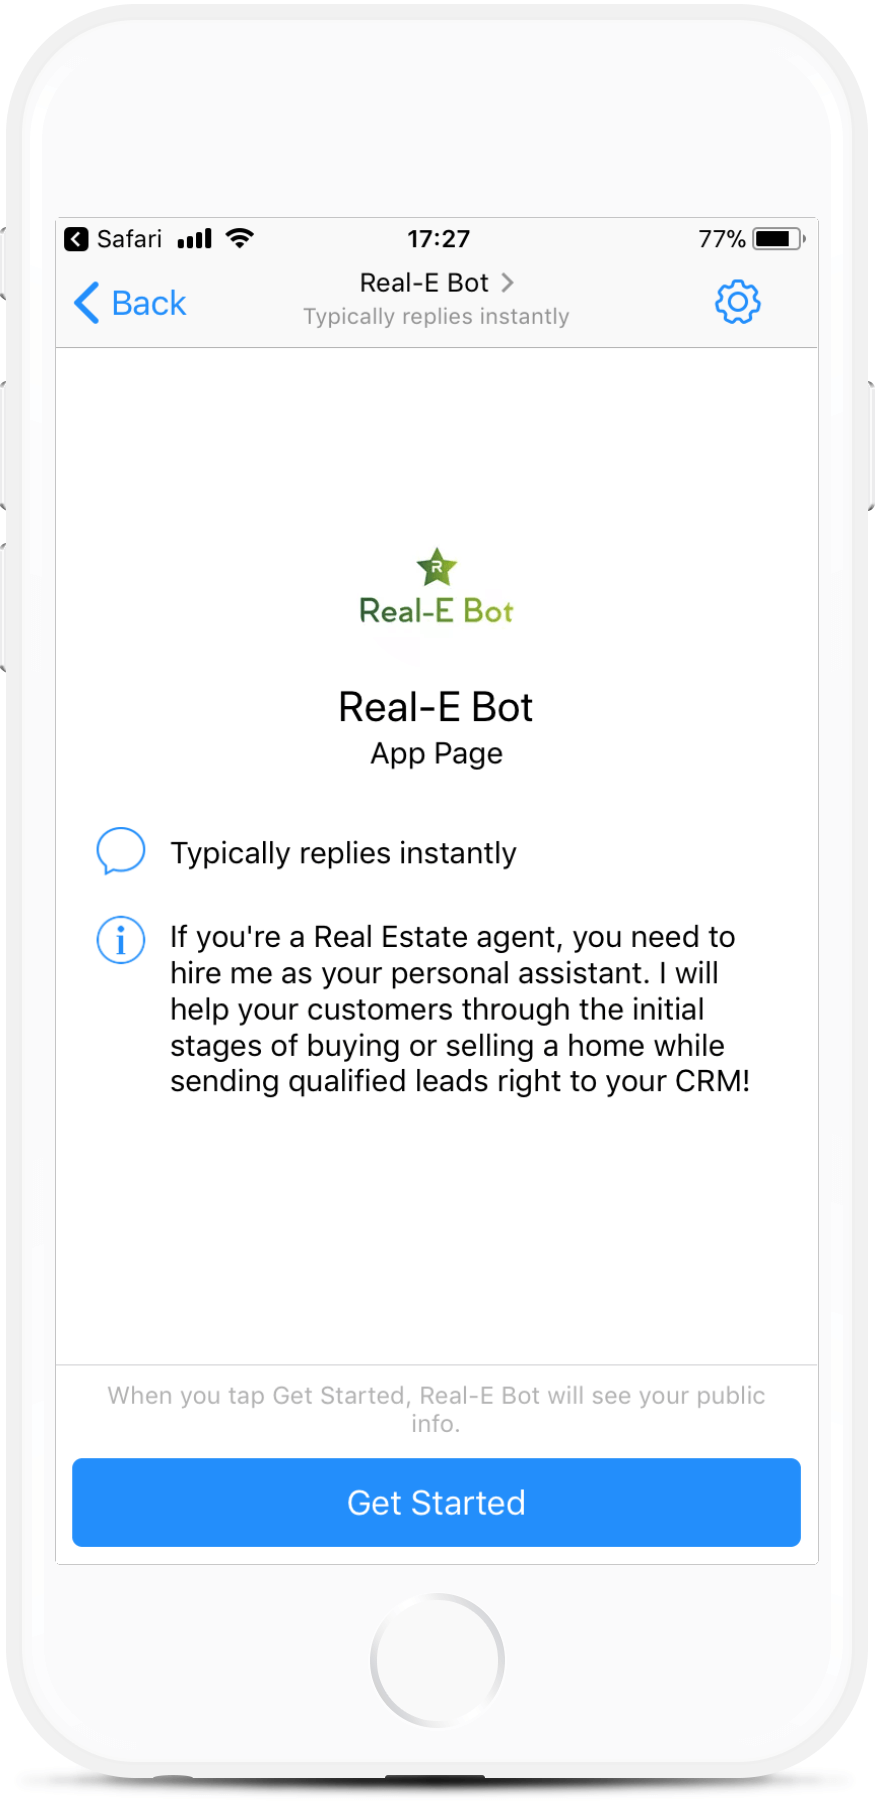 Real-E Template for Real Estate Agents